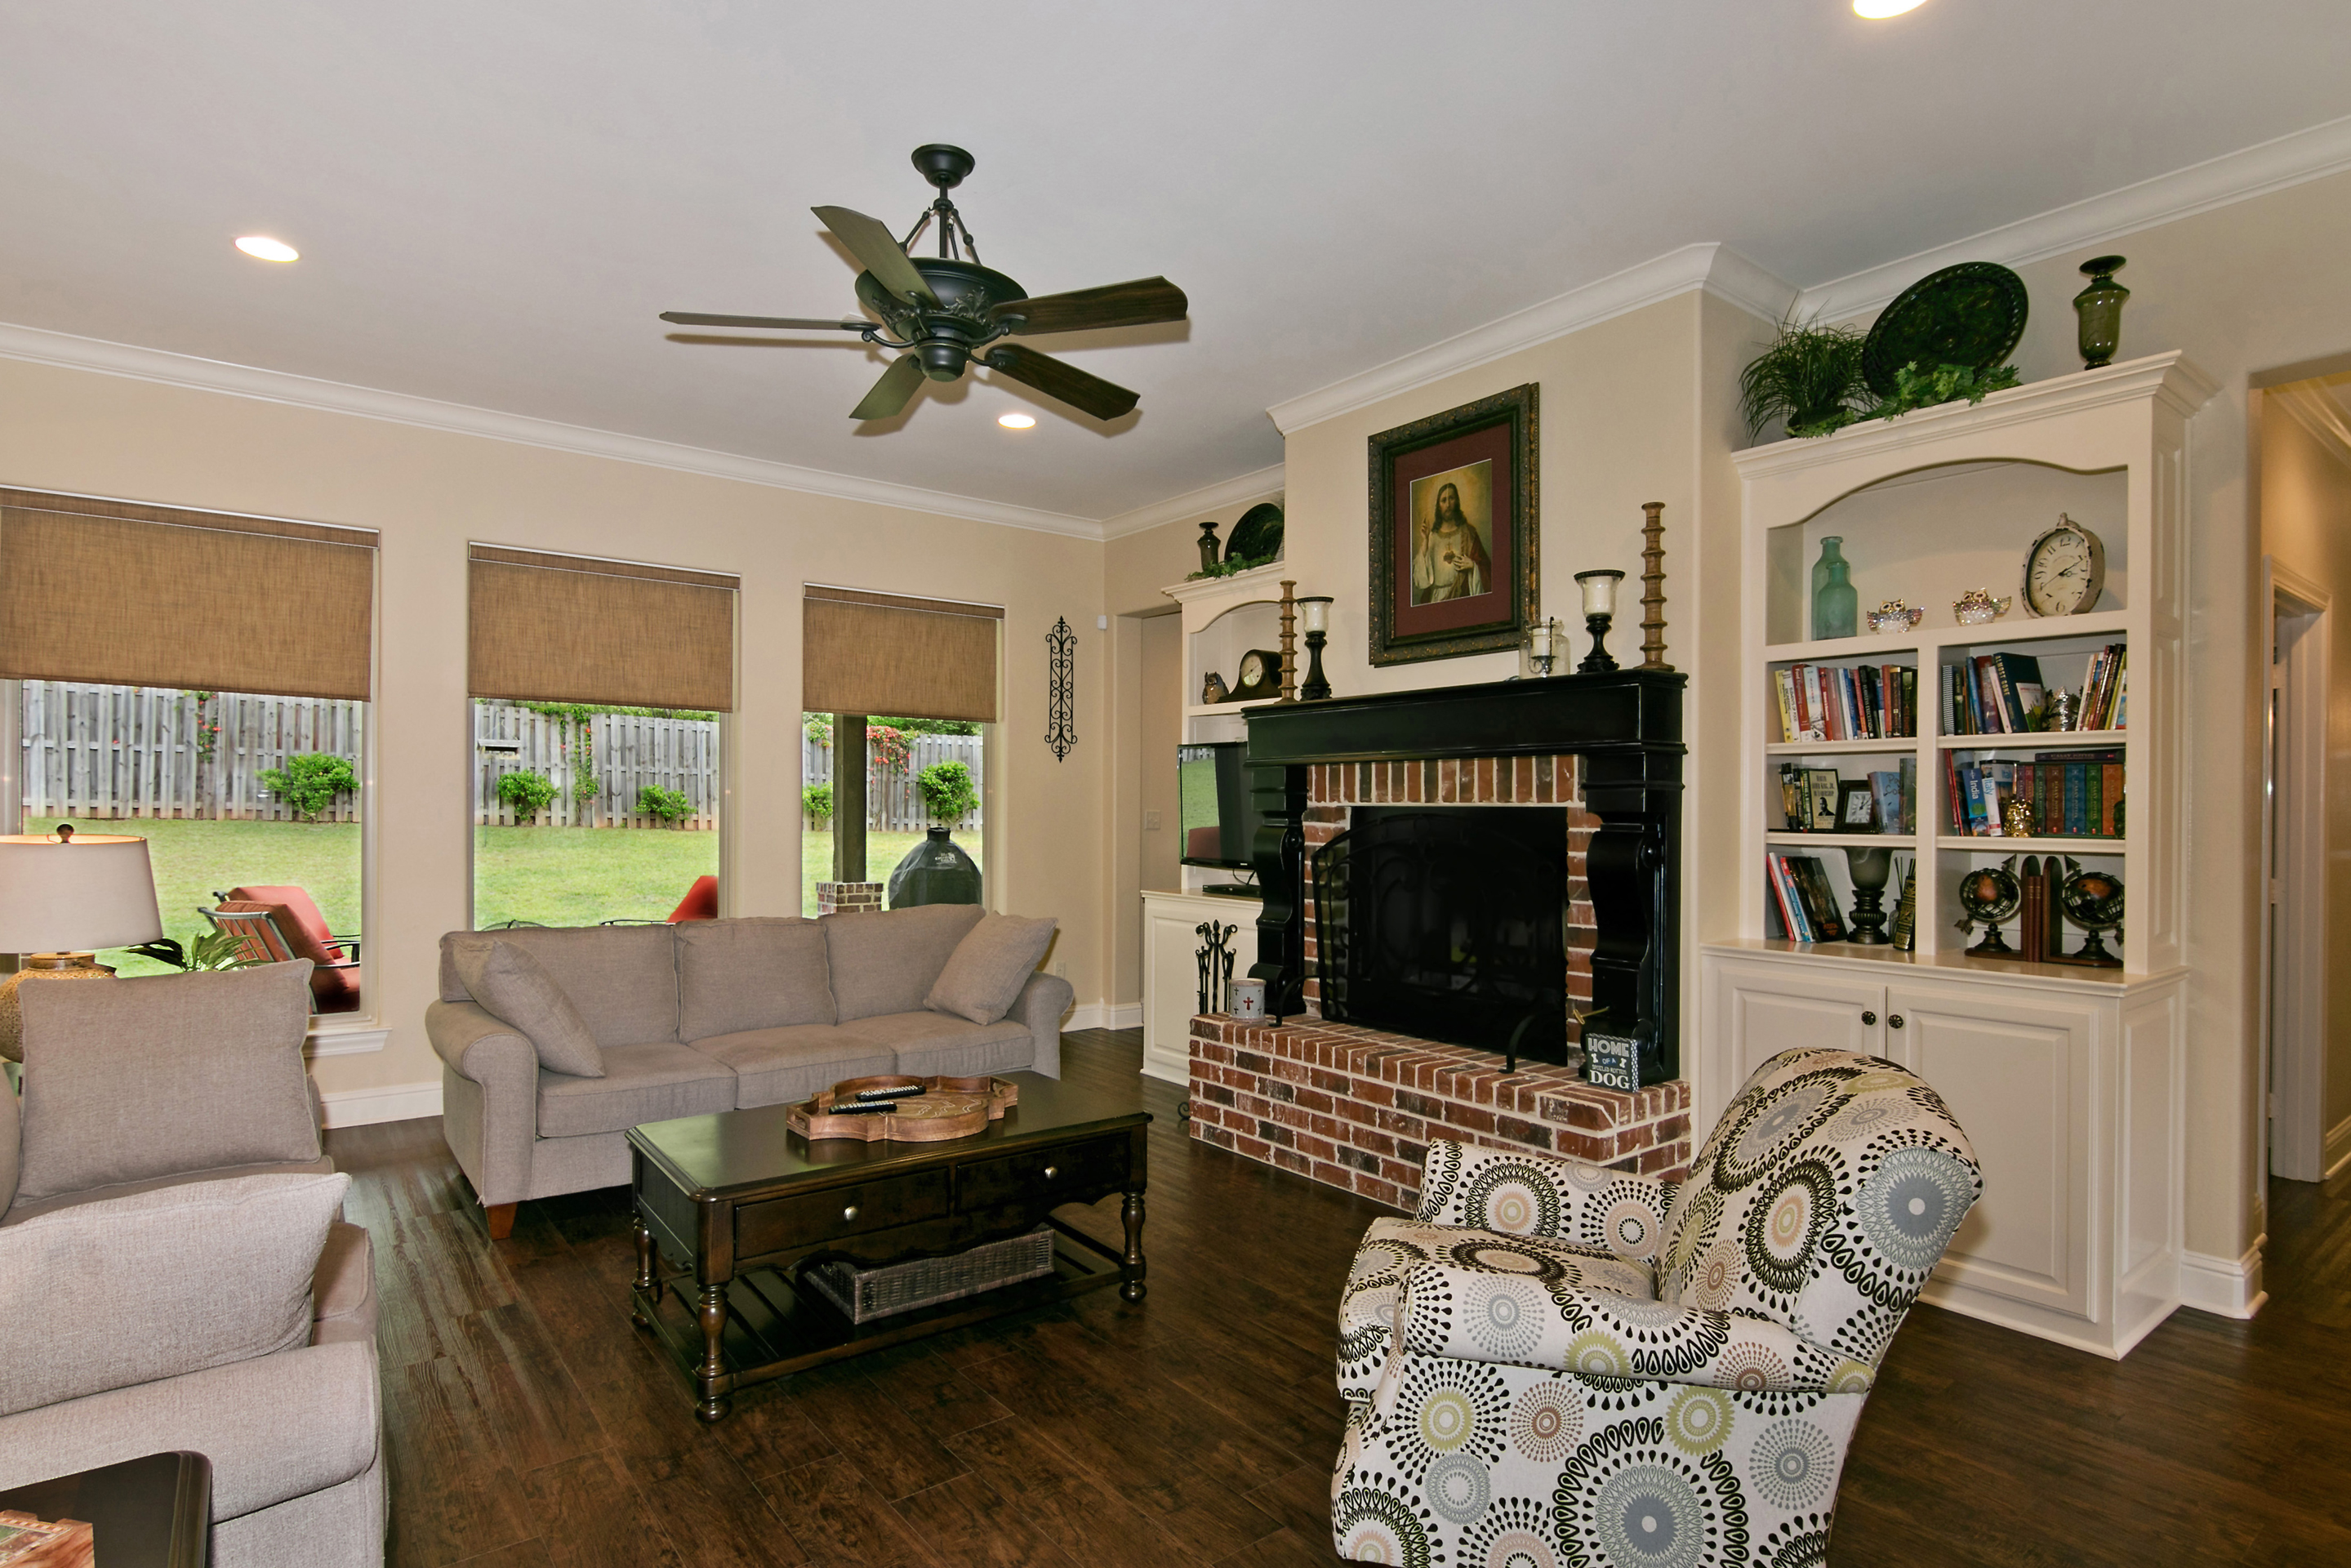 3014 Bull Run Trl, living area